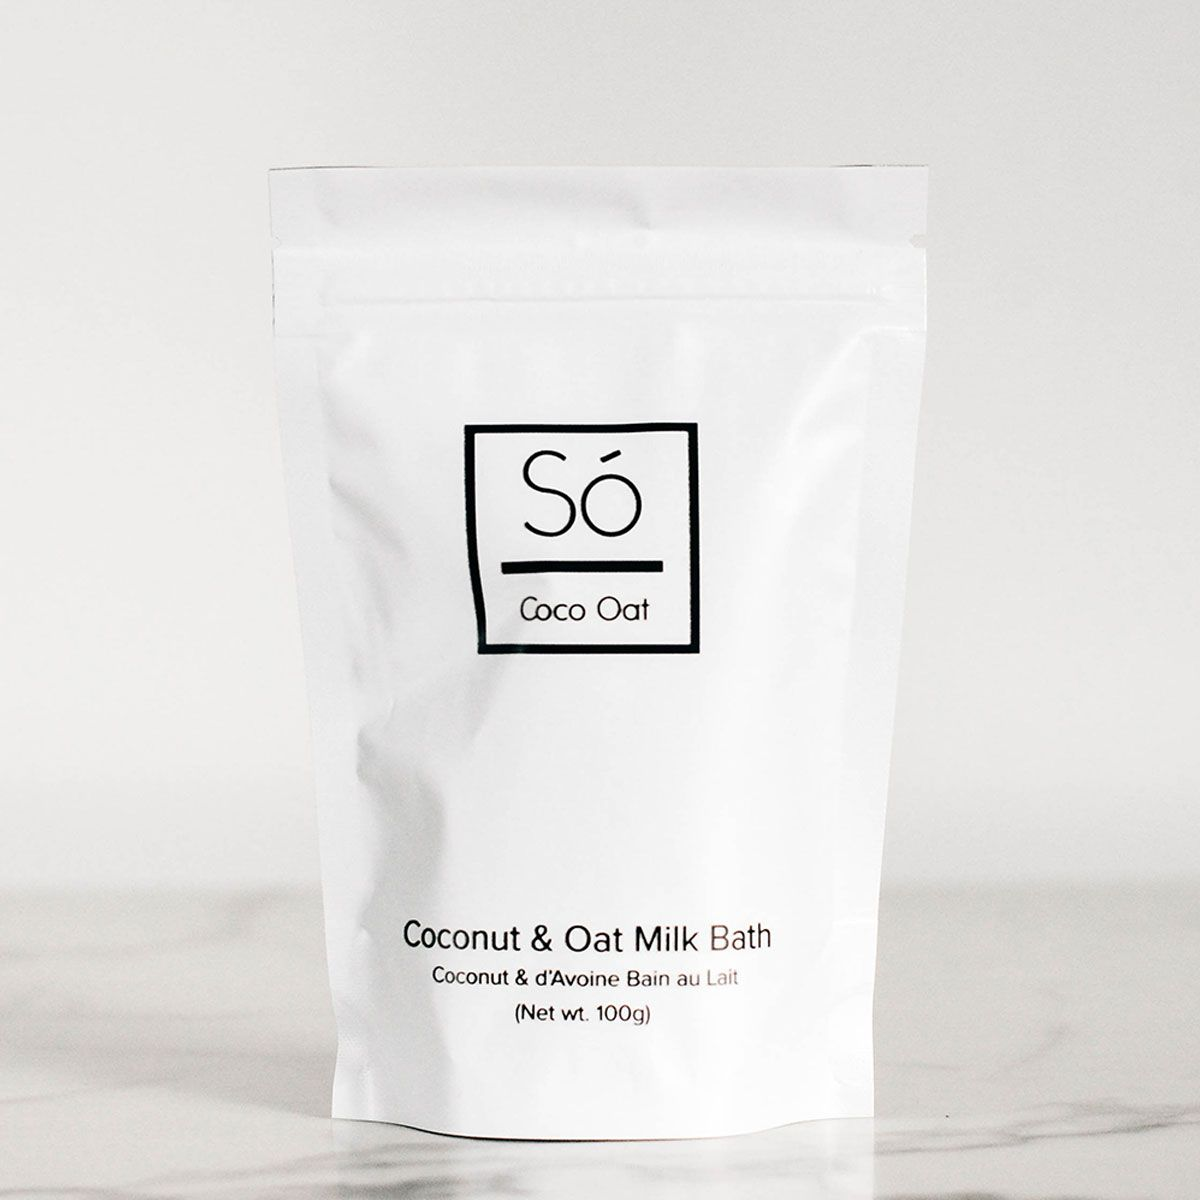 Coconut & Oat Milk Bath (100g) #milkbath